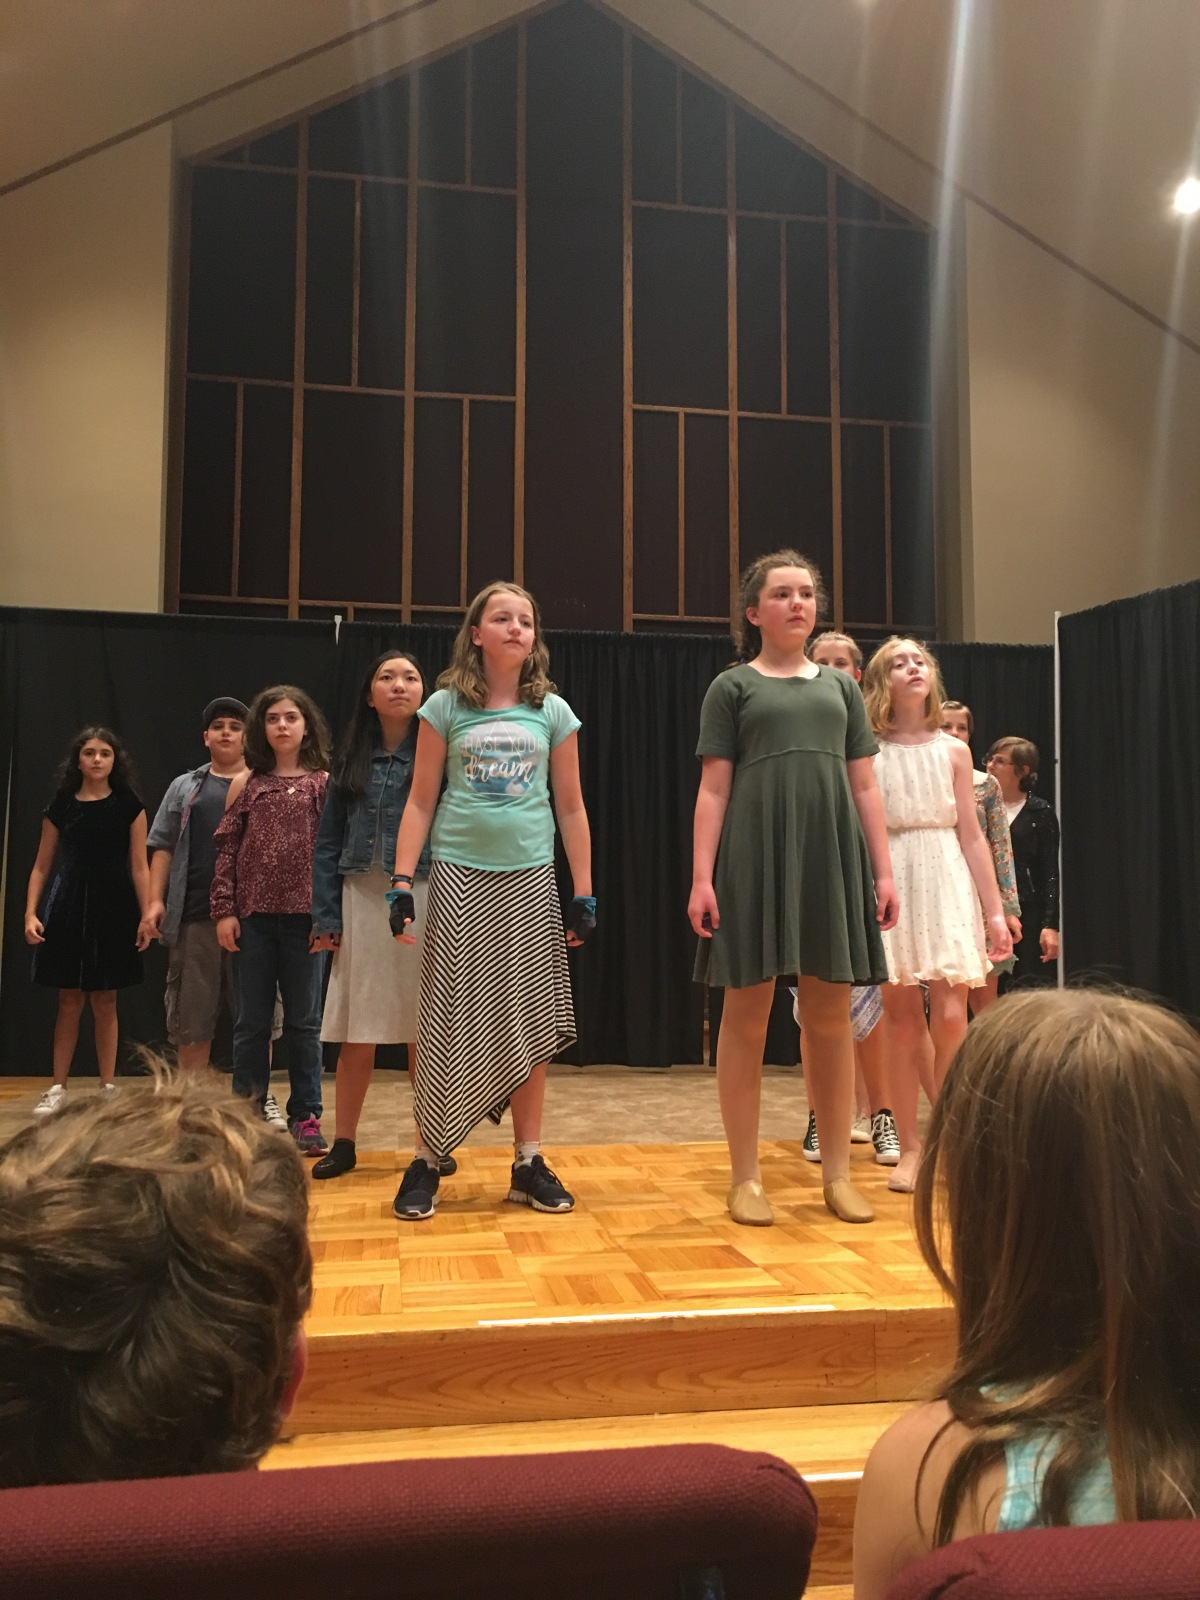 Session 4 Day 9 – Dress RehearsalDay!